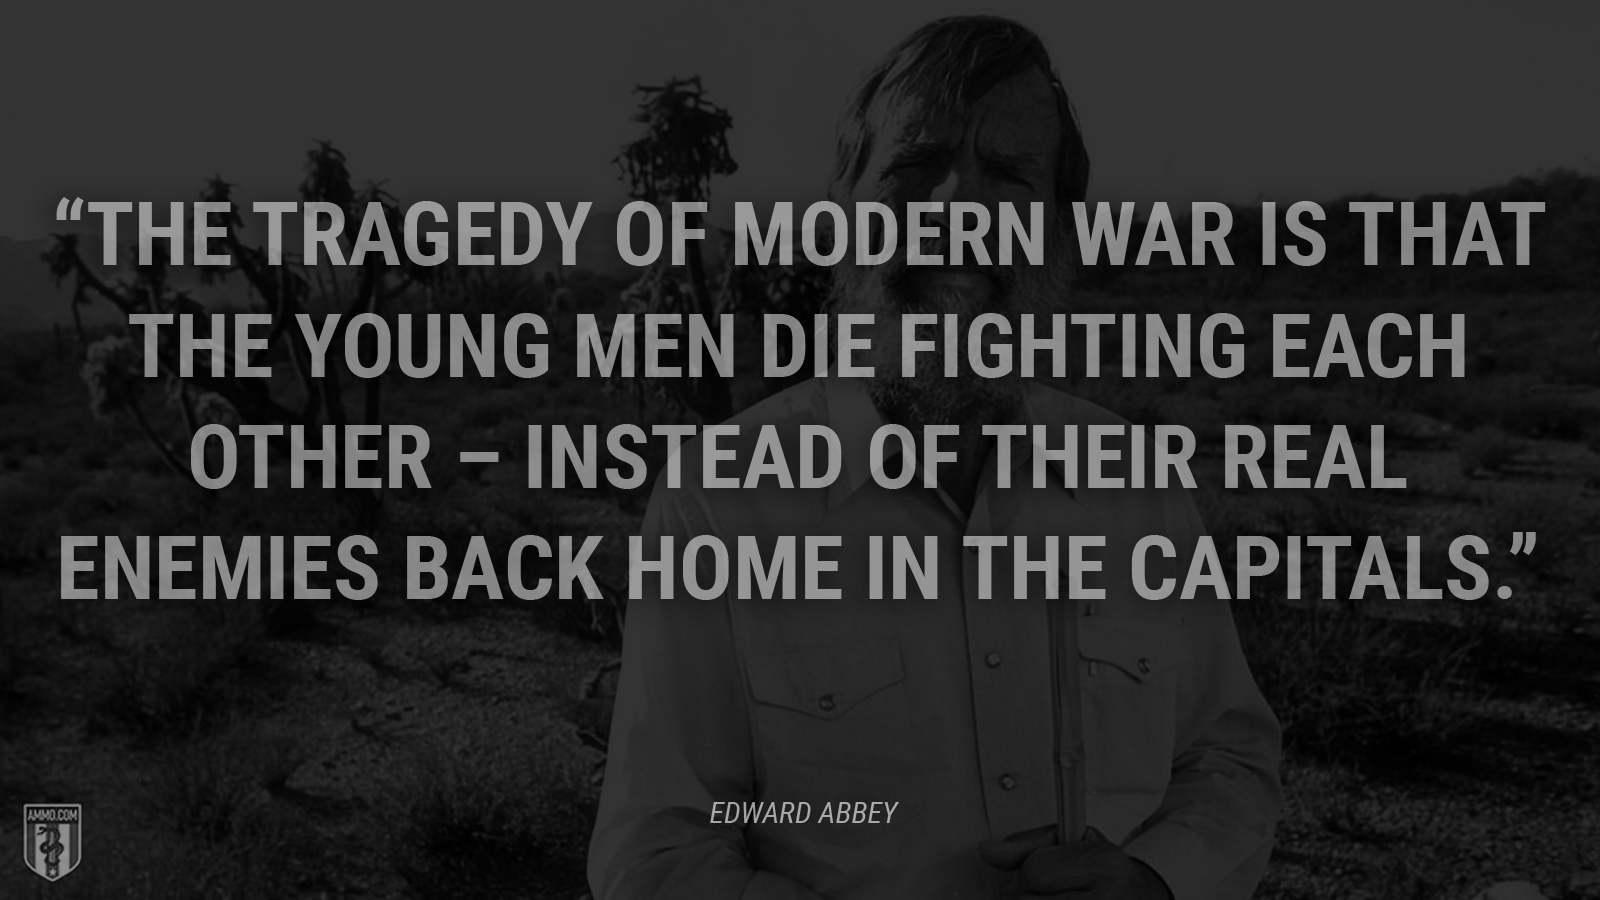 """The tragedy of modern war is that the young men die fighting each other – instead of their real enemies back home in the capitals."" - Edward Abbey"